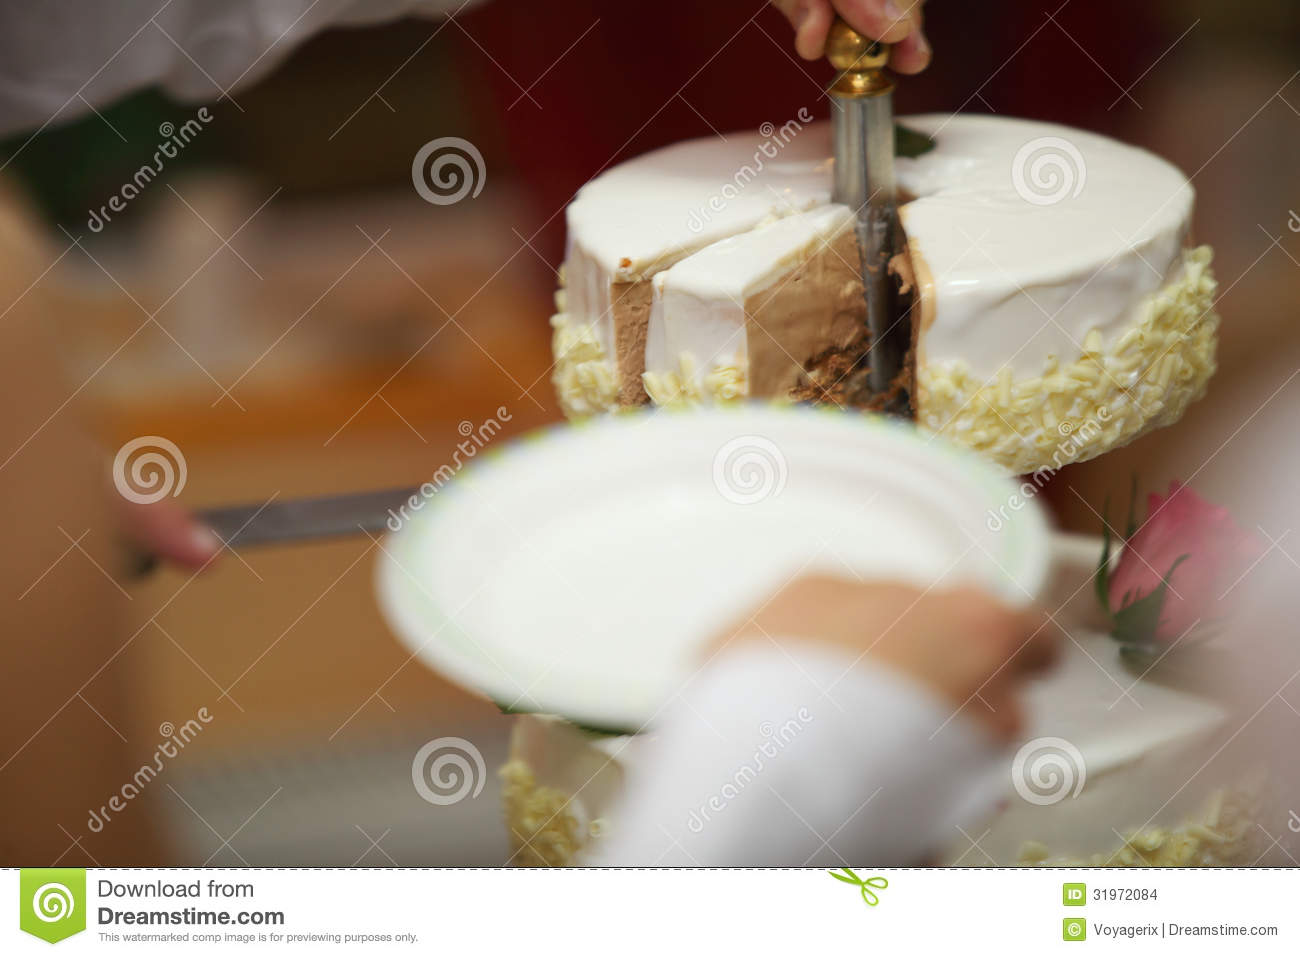 One Hand Cutting Beautiful Wedding Cake Stock Photo Image Of